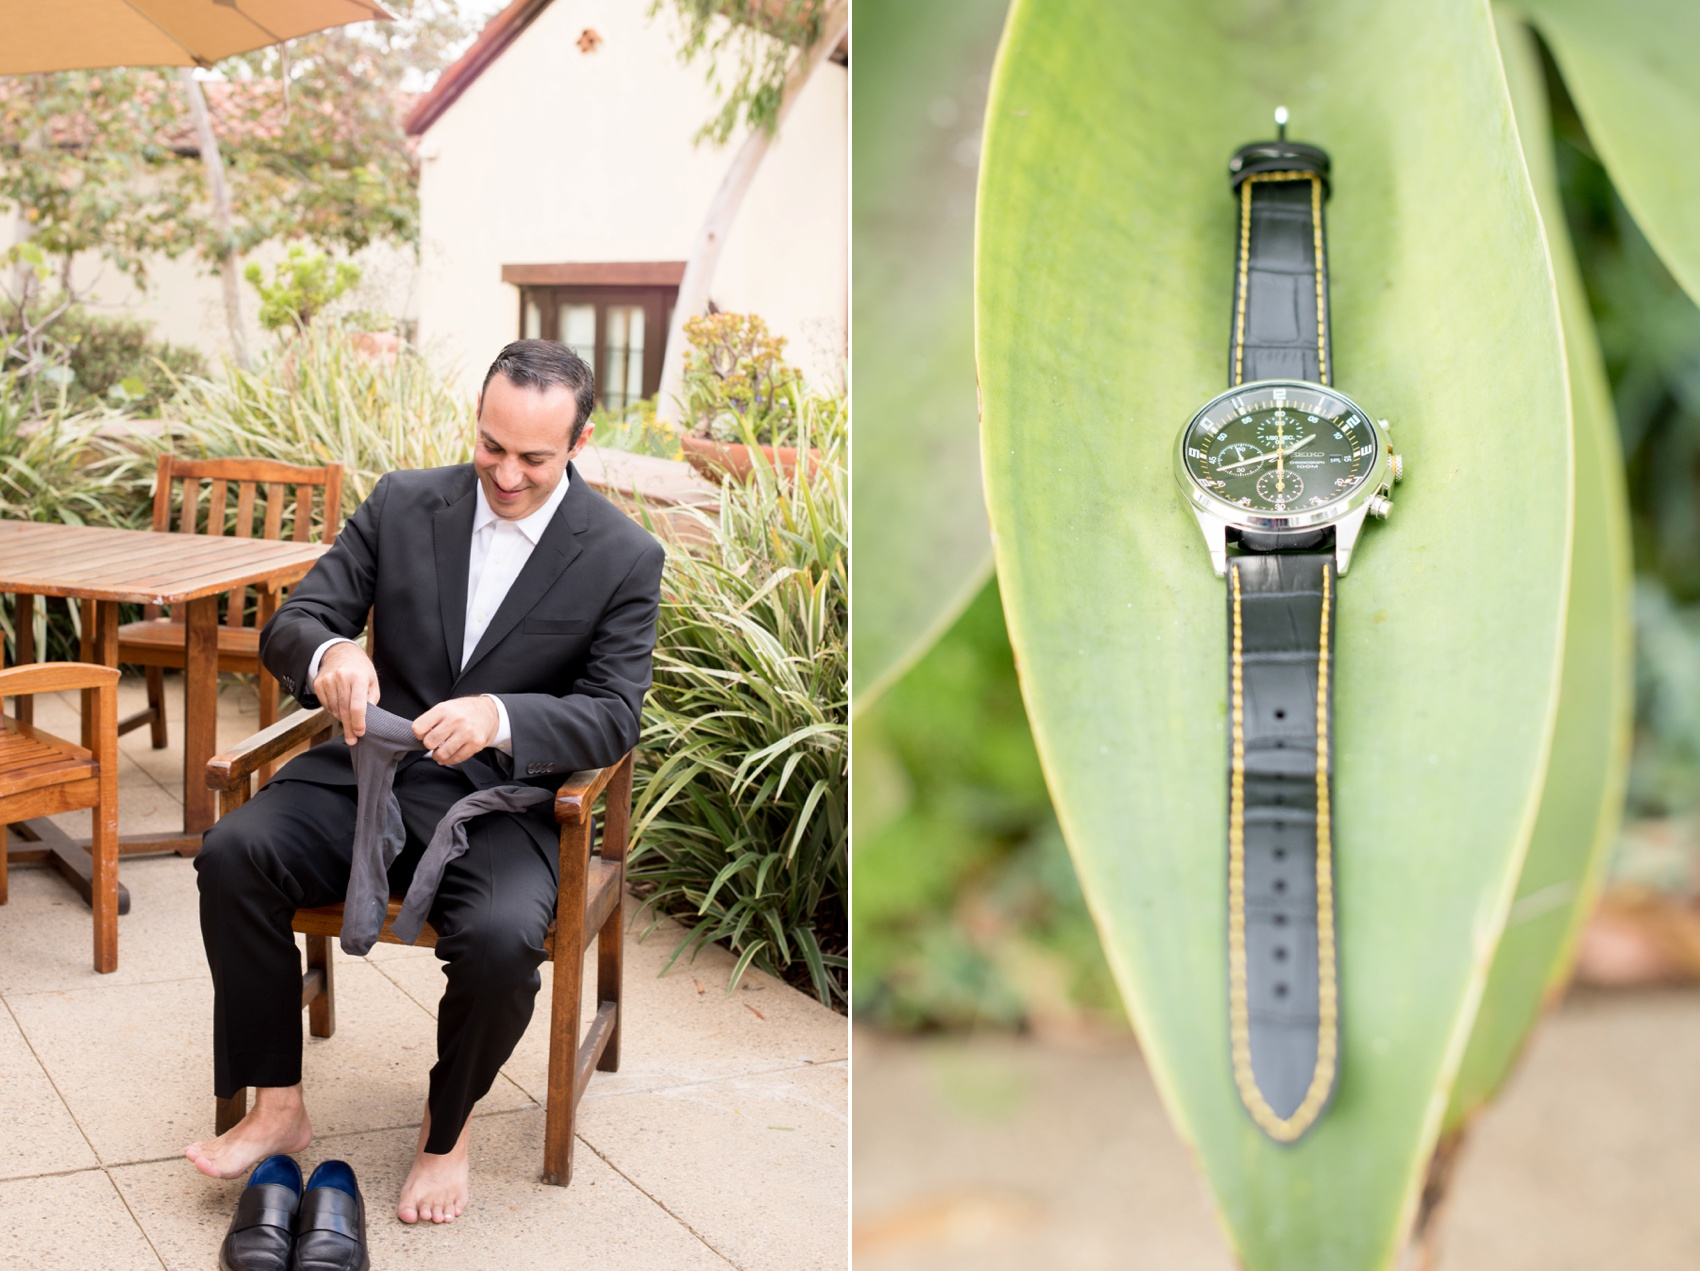 Estancia La Jolla wedding photography by Mikkel Paige Photography. Tropical wedding, California coast. Groom getting ready photos.